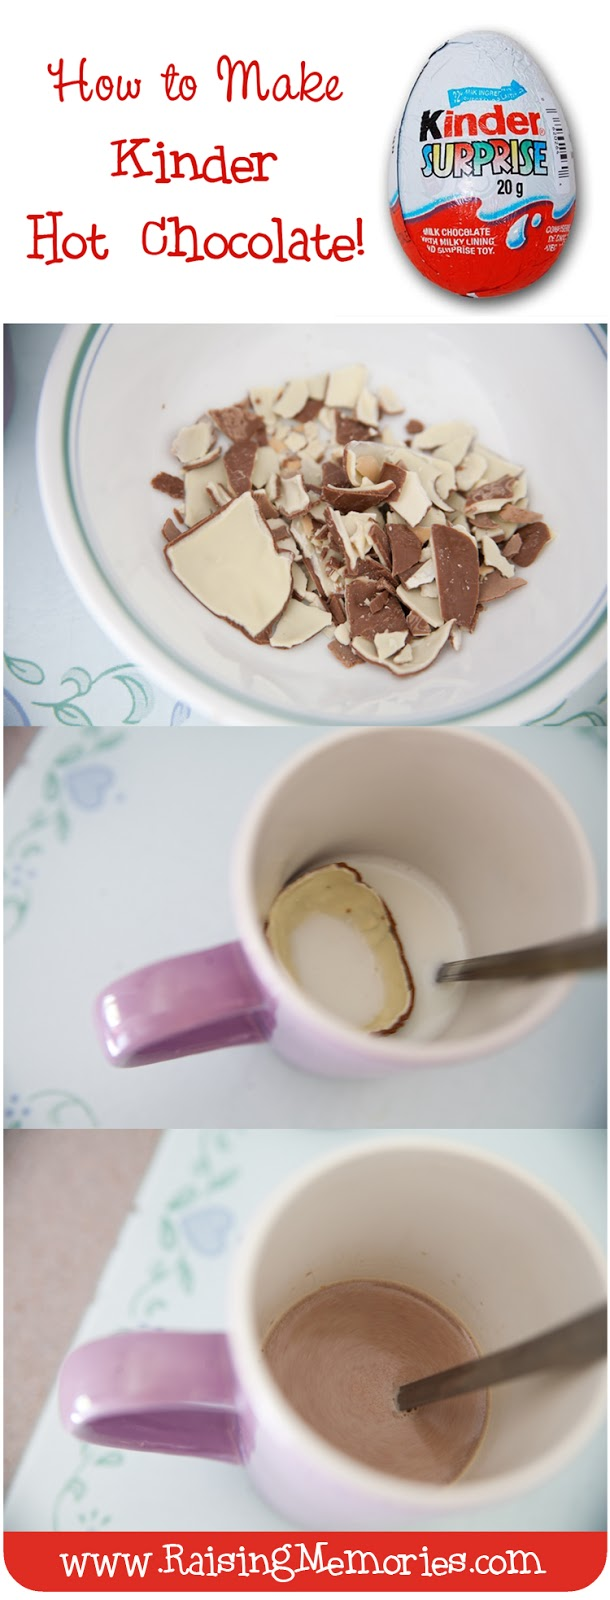 Raising Memories: How To Make Hot Chocolate From Kinder Eggs ...